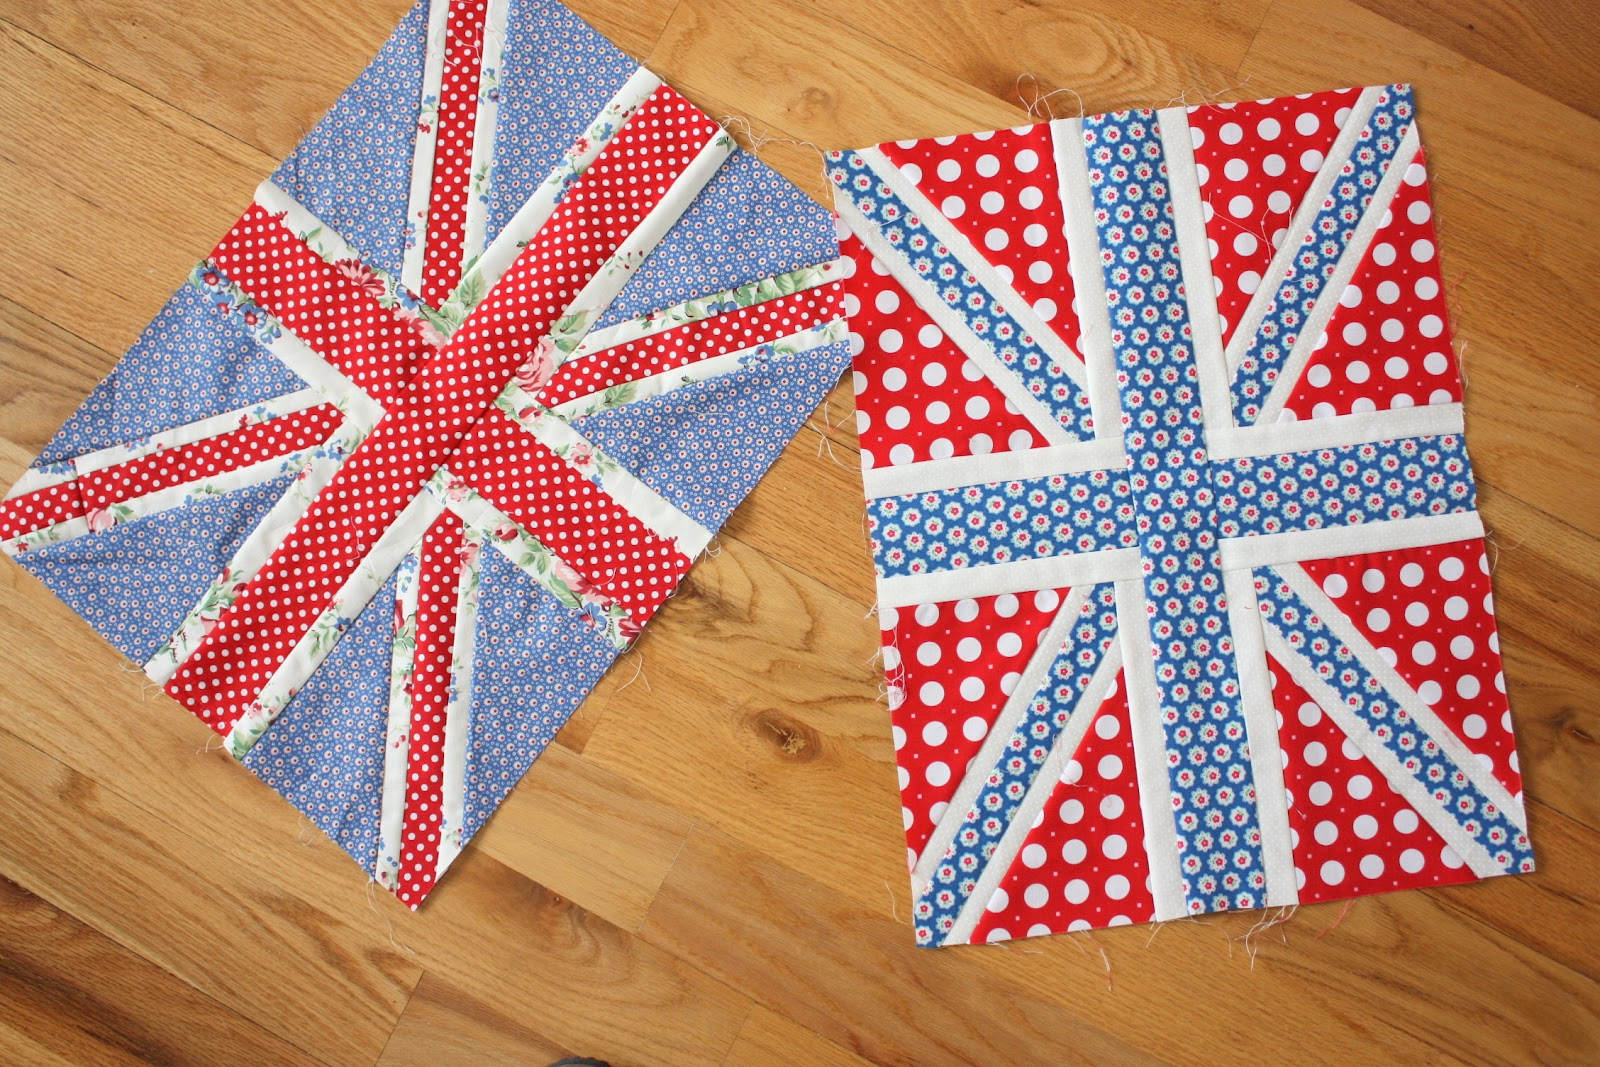 This year's crop of Union Jack quilt blocks - Diary of a Quilter ... : union jack quilt - Adamdwight.com